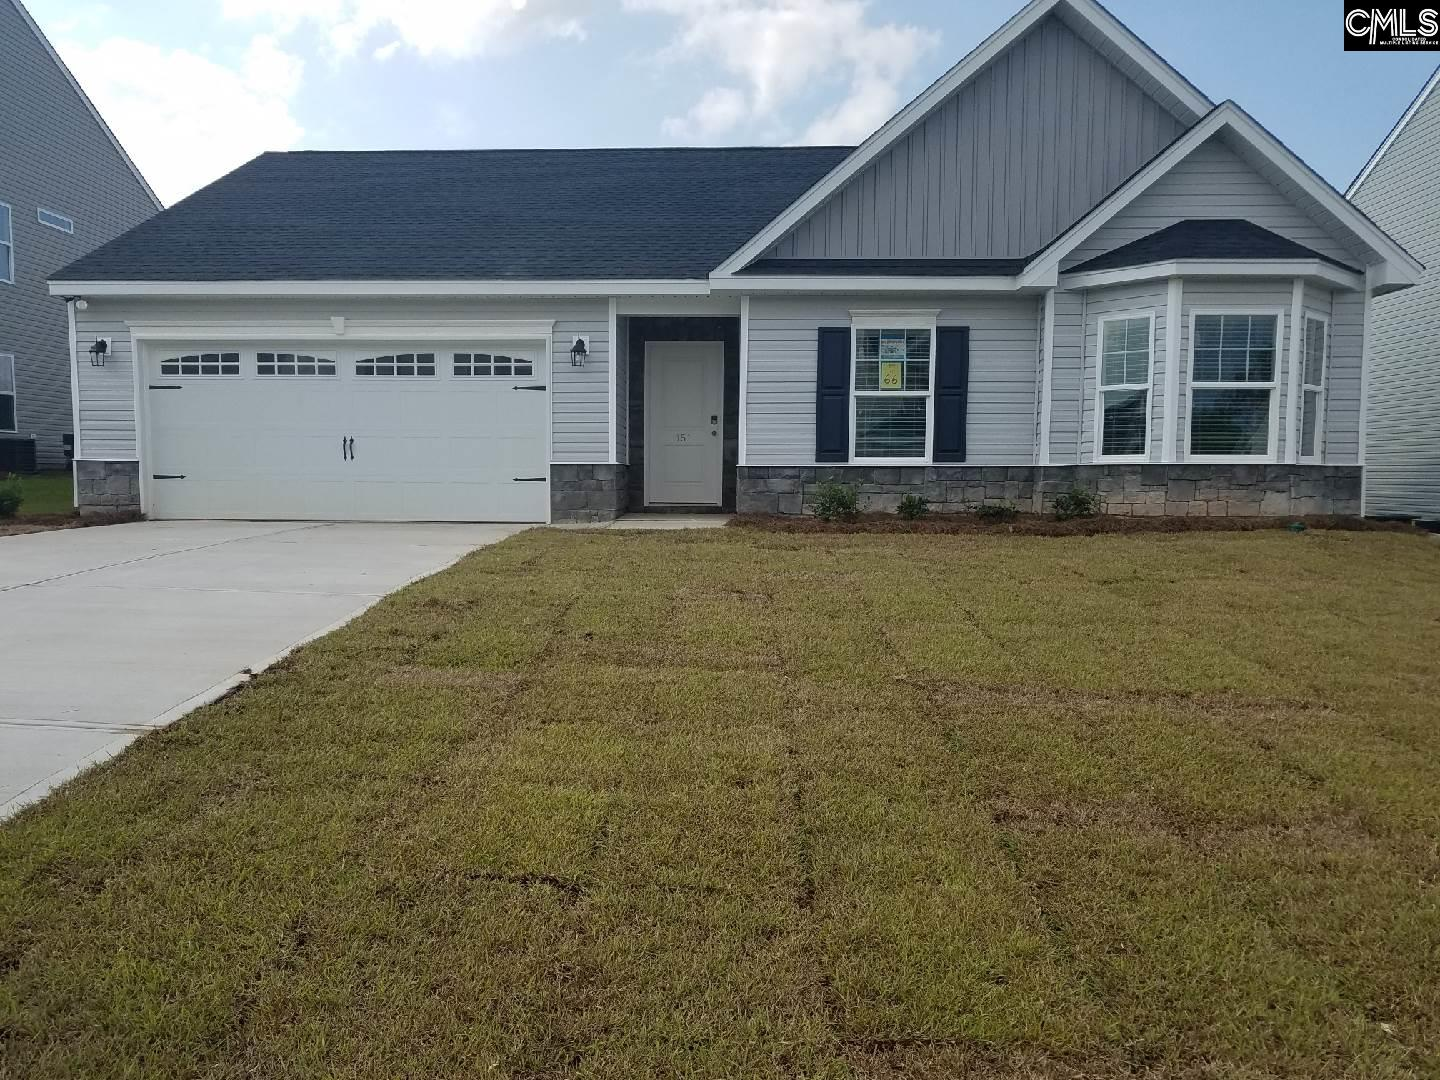 151 Turnfield West Columbia, SC 29170